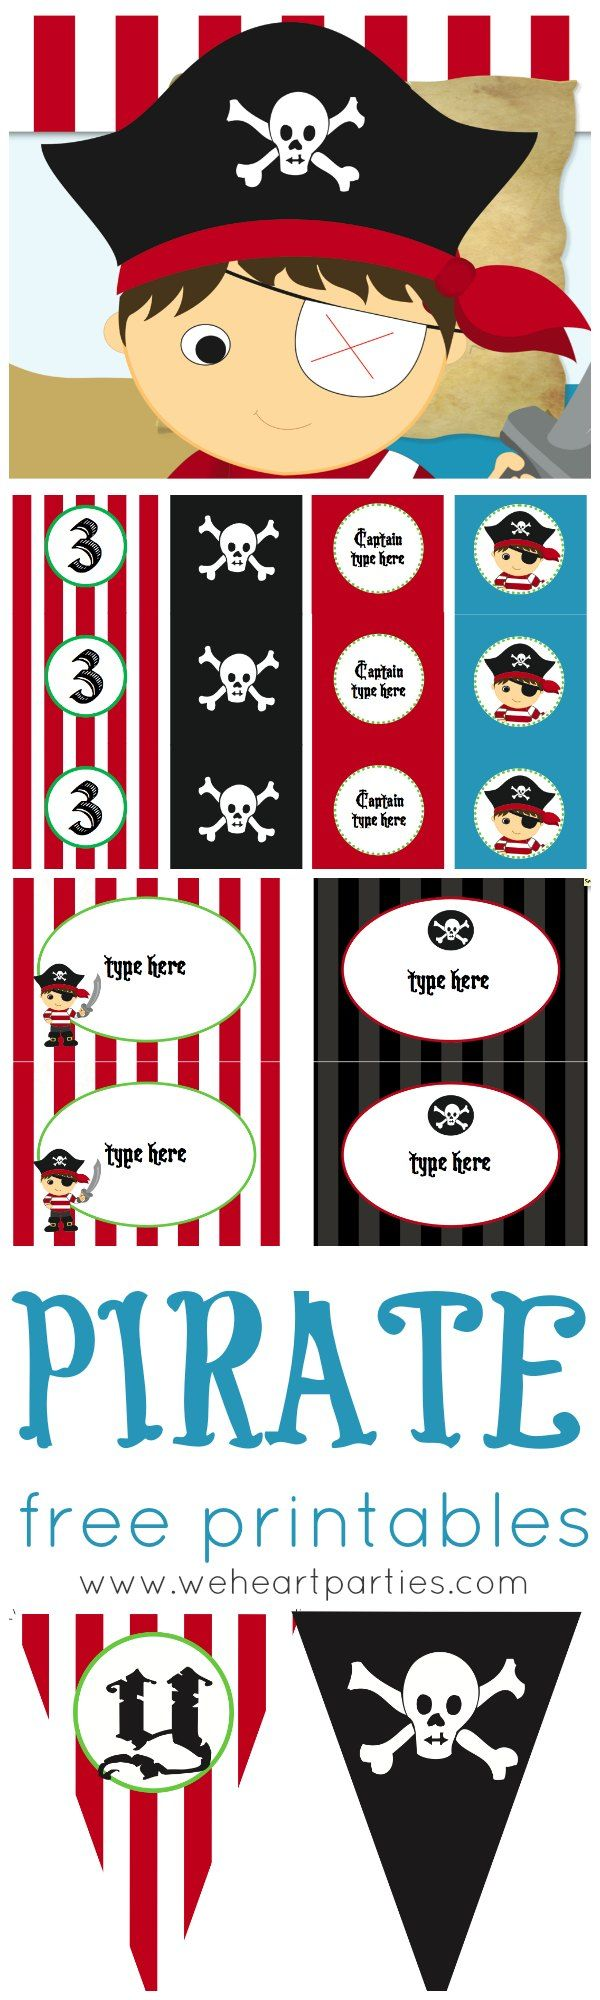 Free Pirate Party Printables (editable with child's name and age too!)